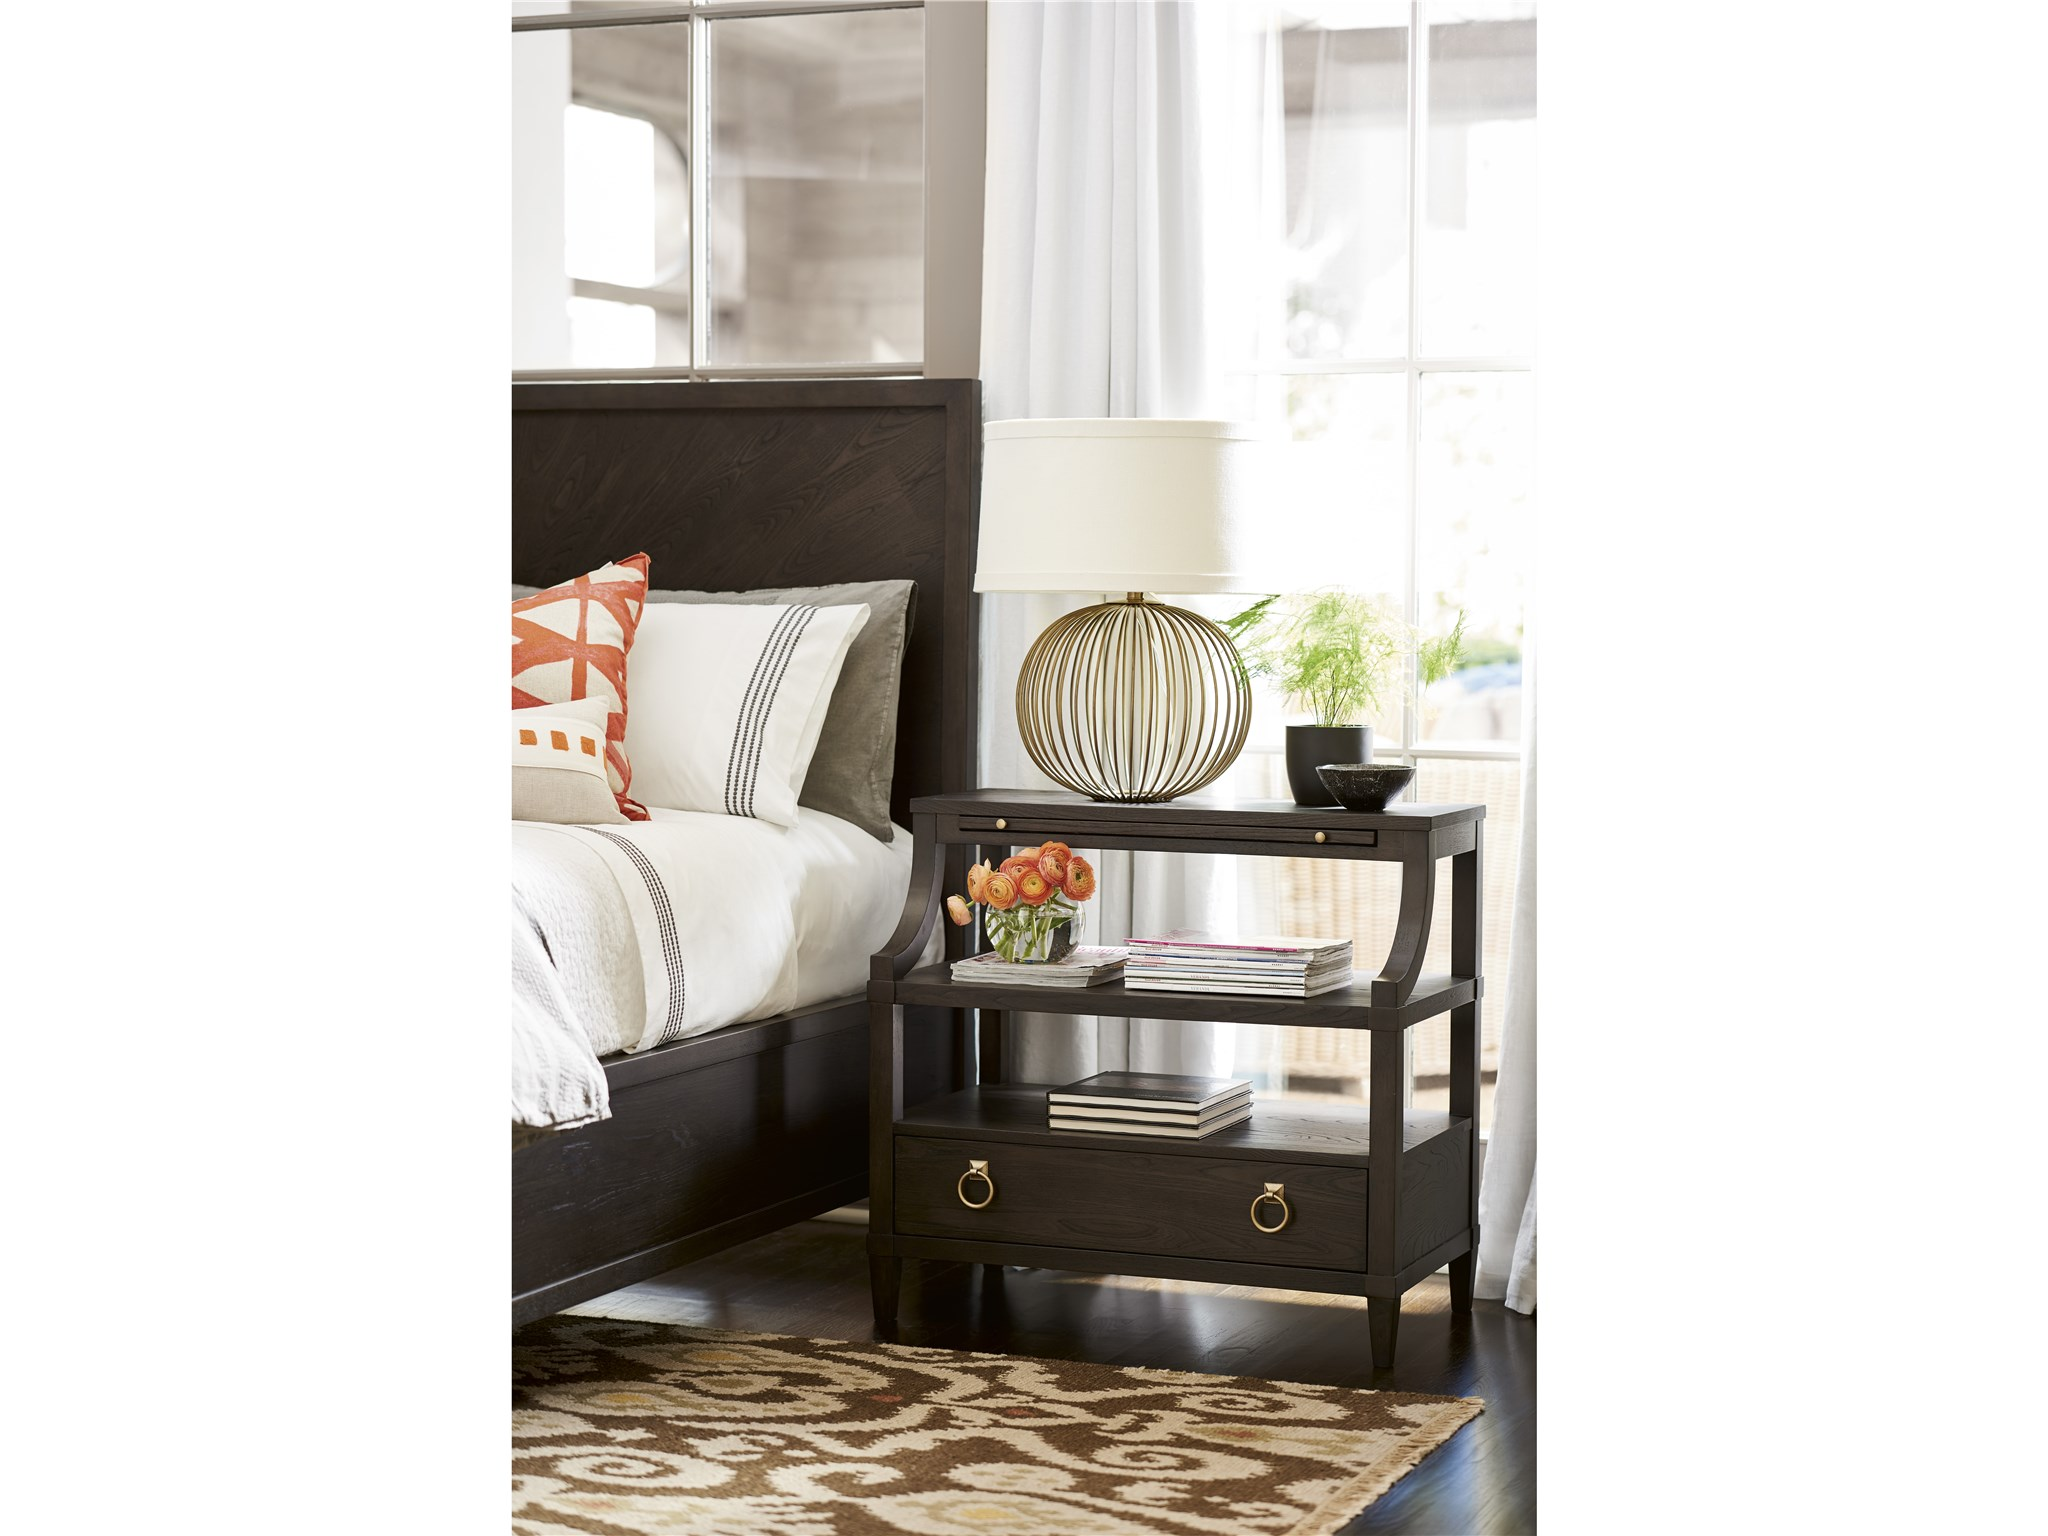 788_BR_RS08_355_vm_001 5 Different types of bedside tables to upgrade your bedroom